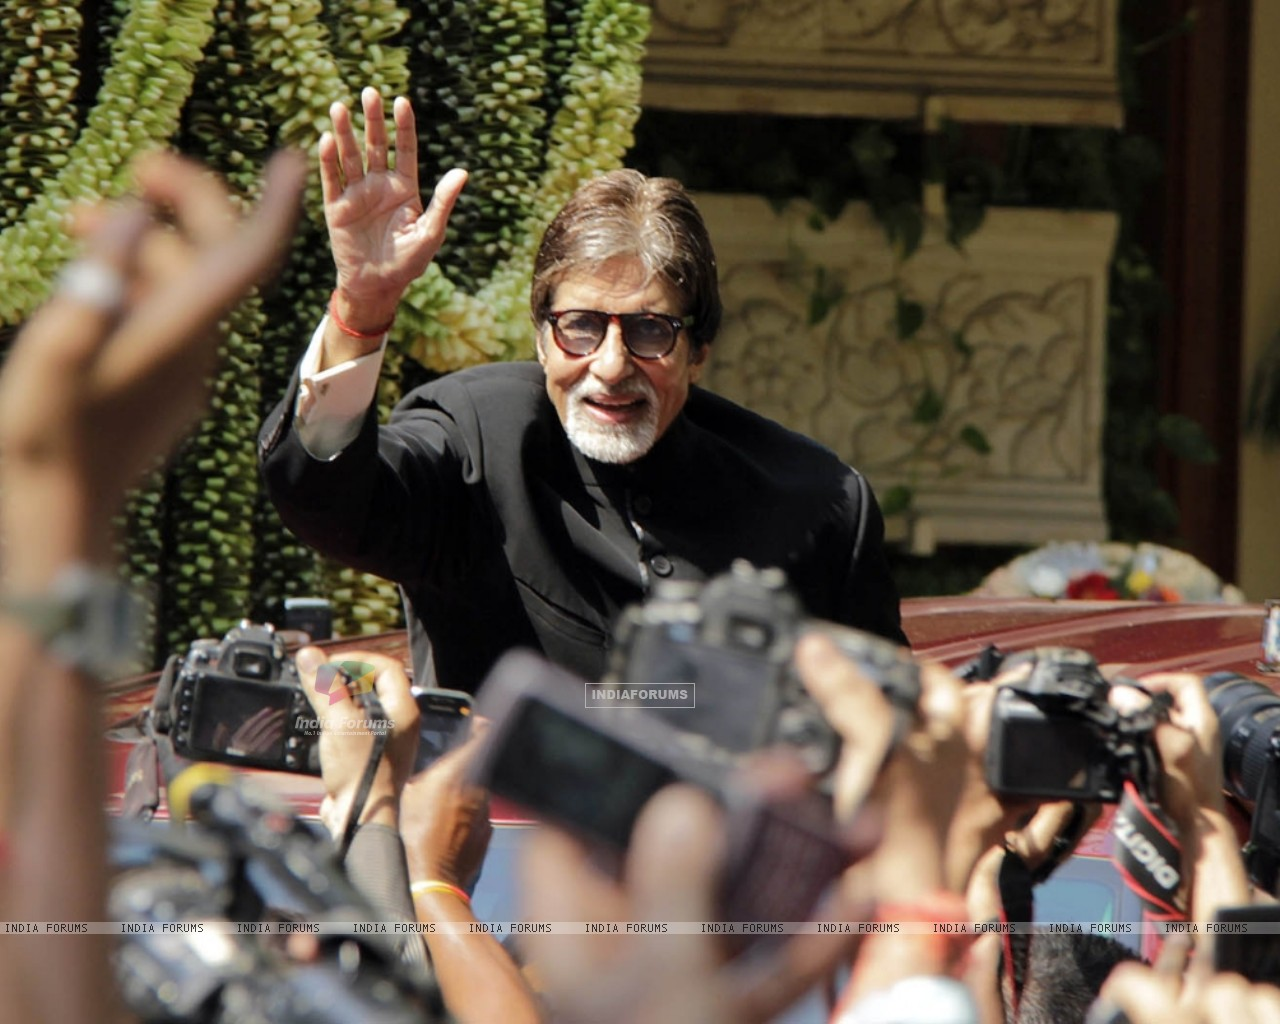 Amitabh Bachchan celebrates his 70th Birthday with the media (231599) size:1280x1024